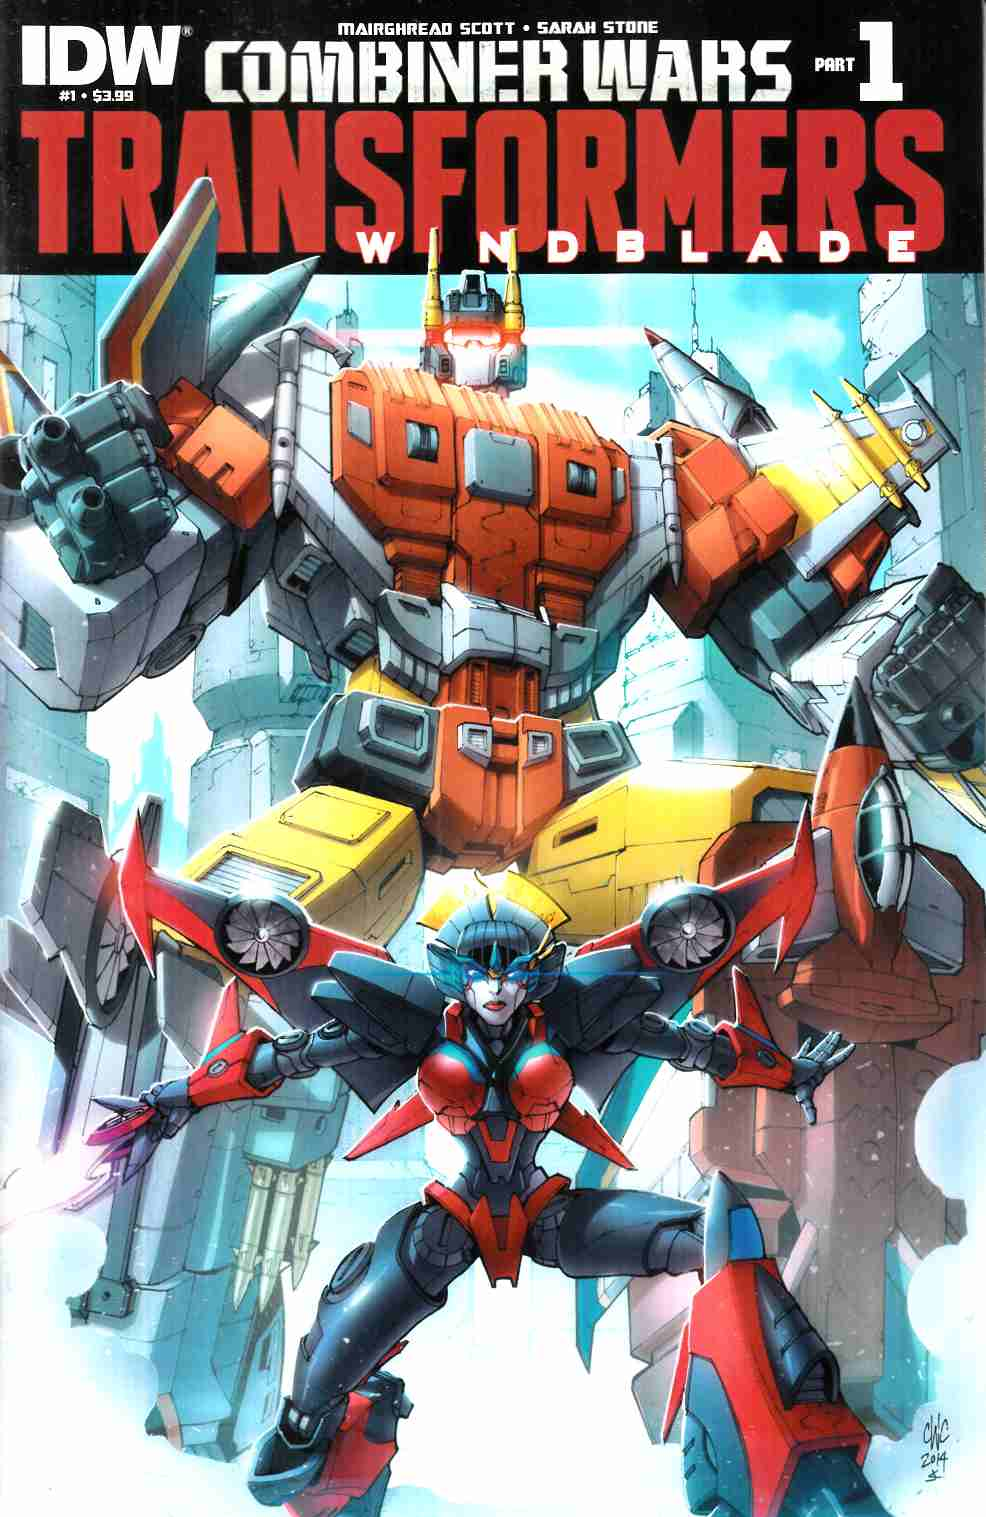 Transformers Windblade Combiner Wars #1 [IDW Comic] LARGE